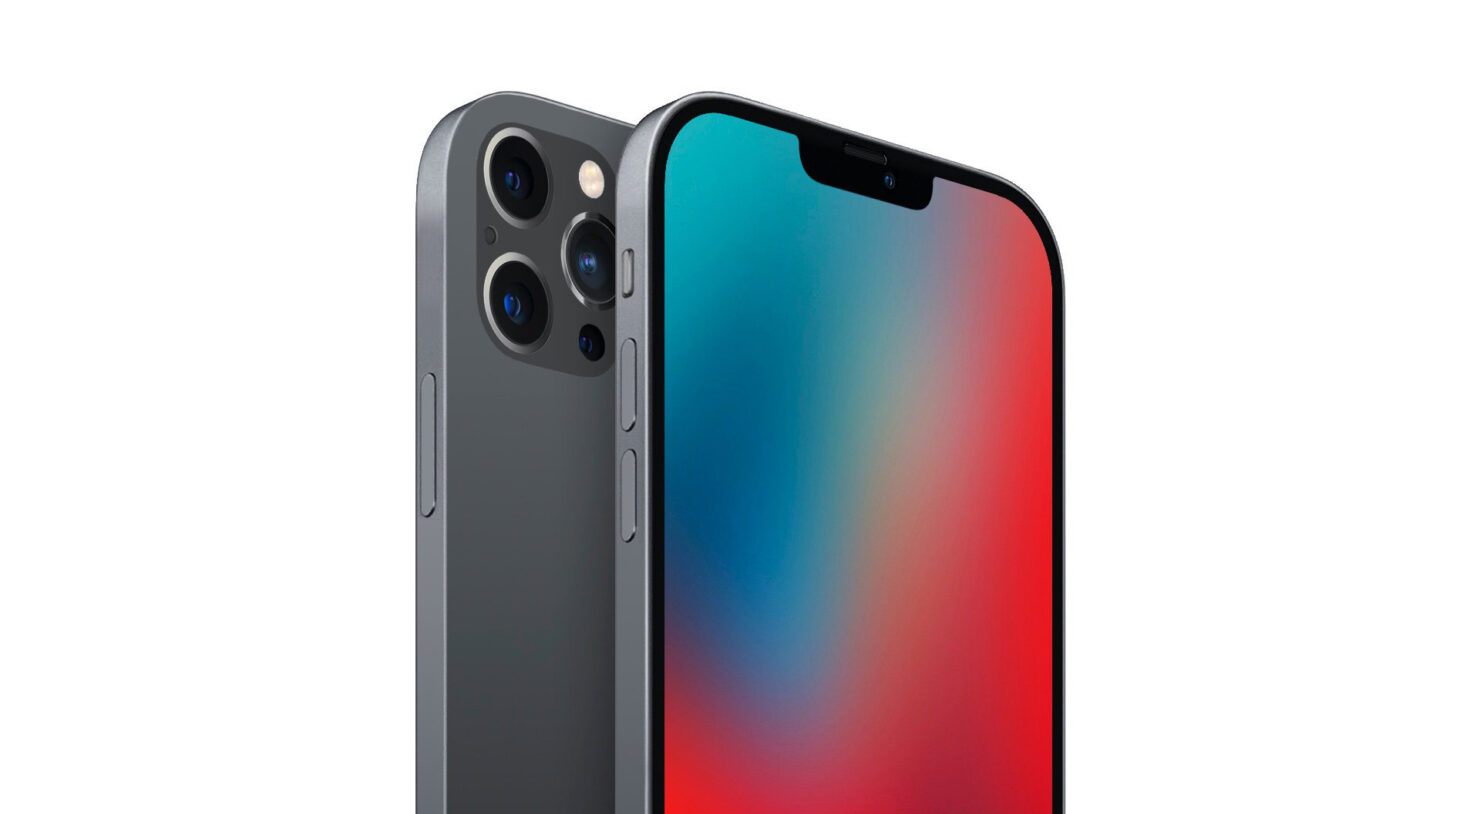 iPhone 12 Specs Leak Reveals Display Sizes, Codenames, and Says All Four Models Will Feature a Smaller Notch